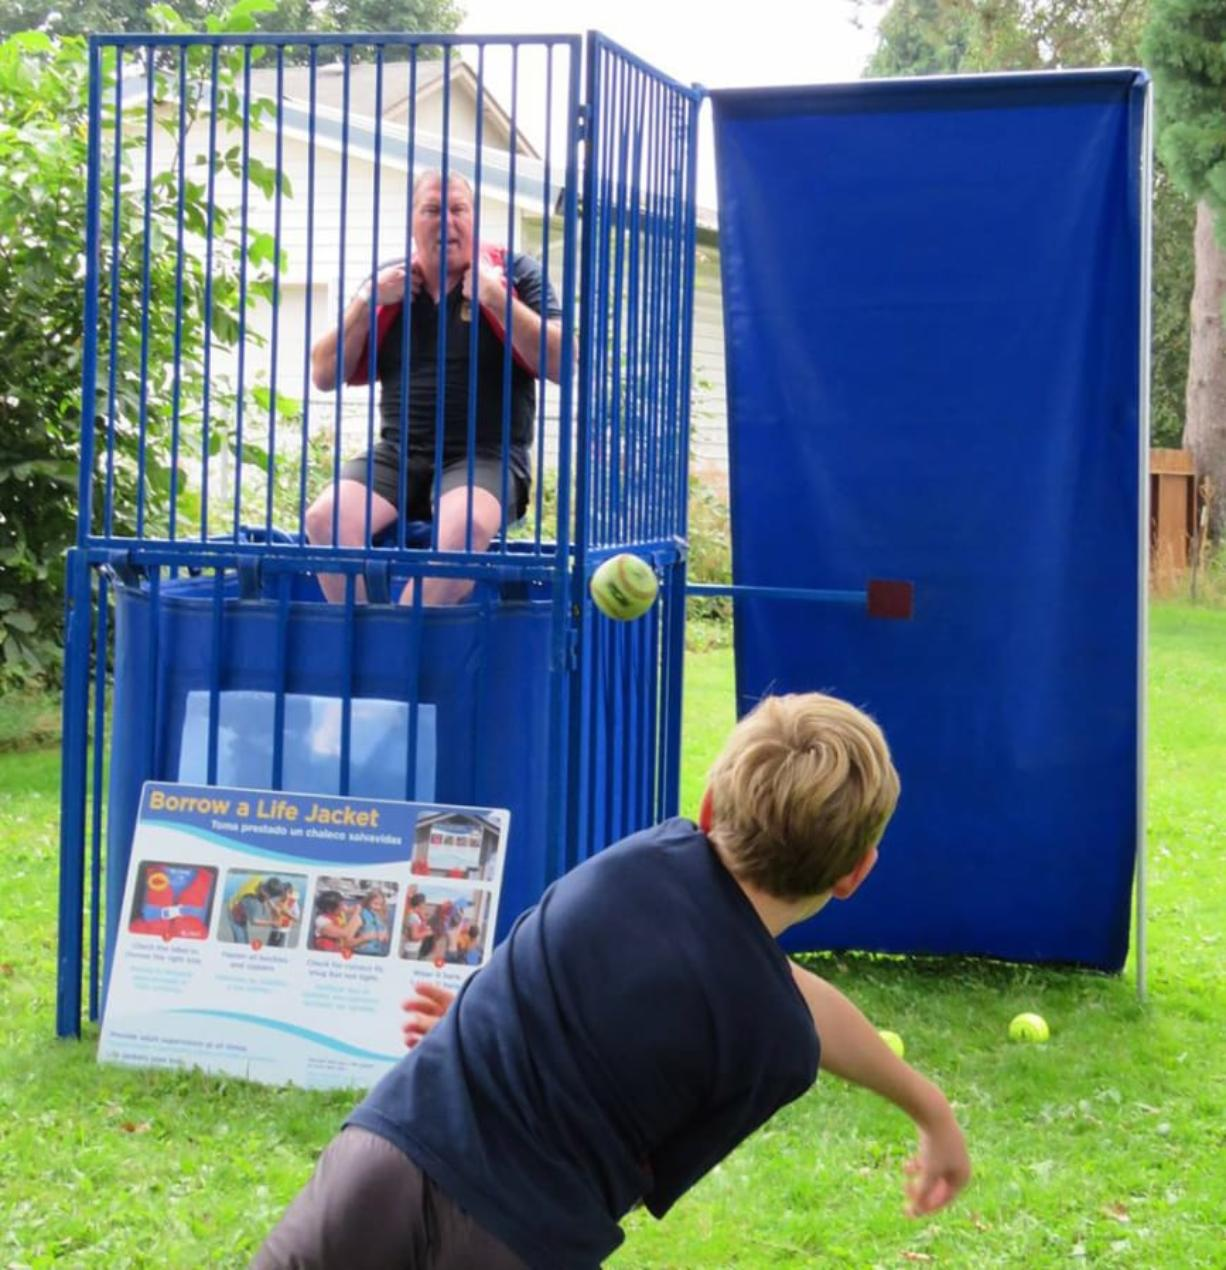 Woodland: Woodland Police Chief James Kelly sits in the dunk tank at the Friends of the Woodland Community Library's second Bocce Ball Blowout tournament to raise funds for a new library building.